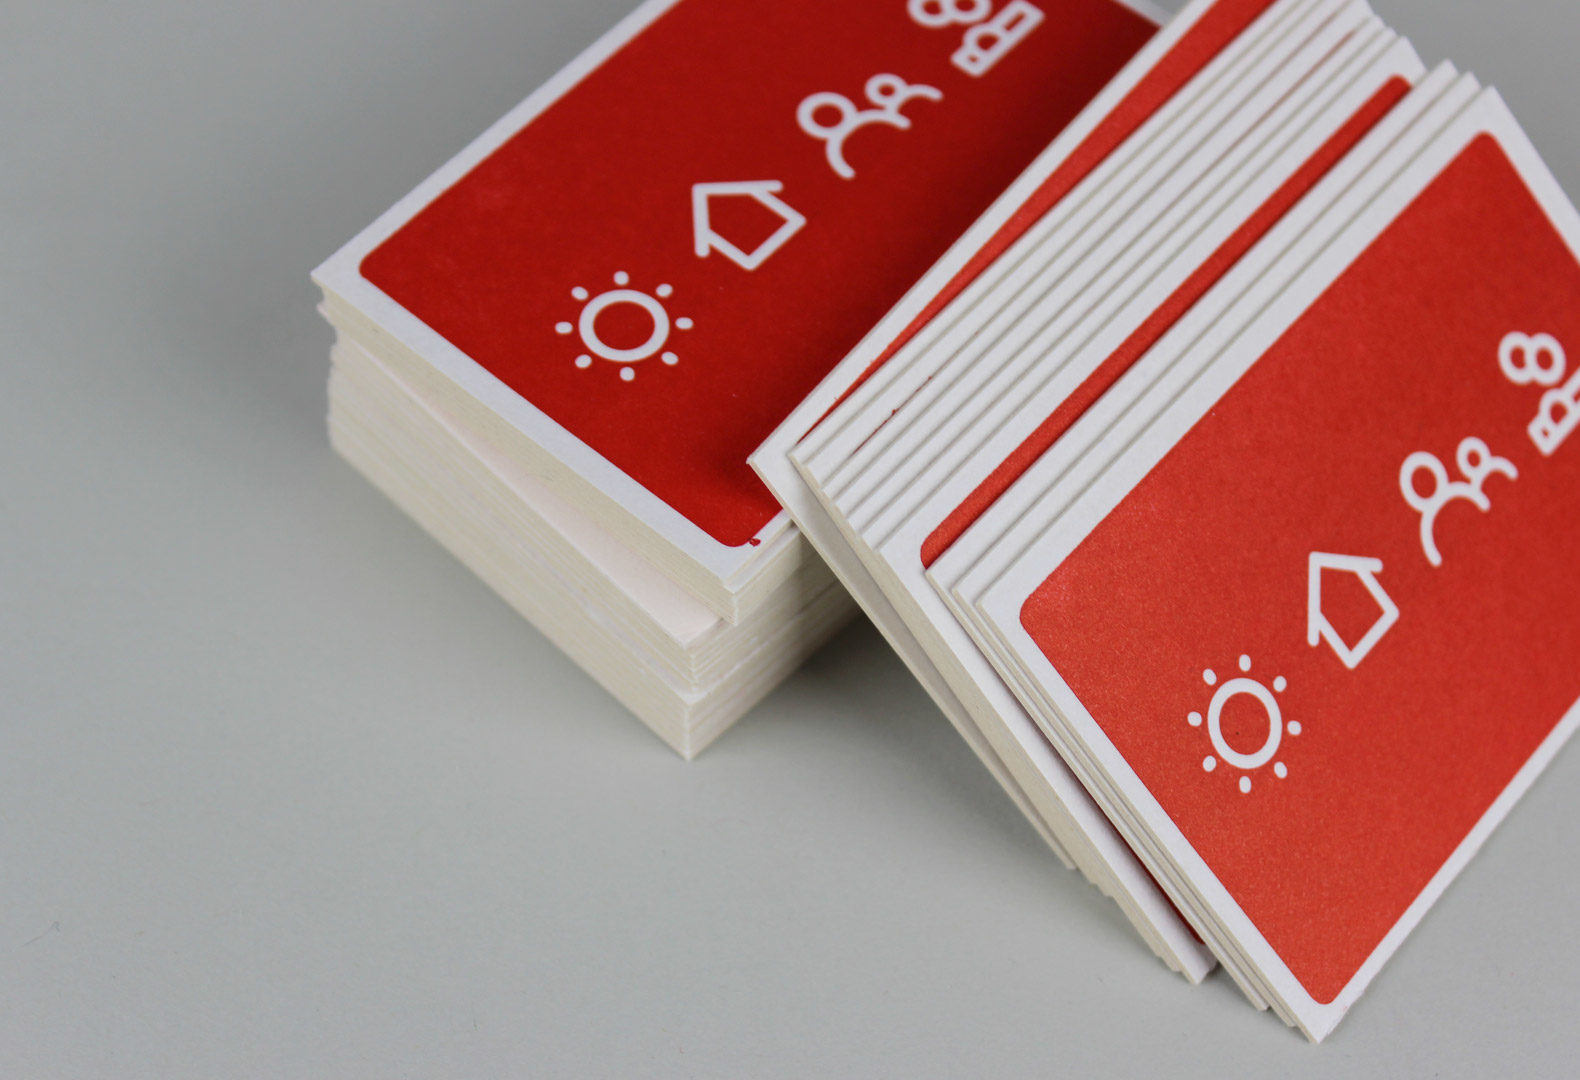 Carbon Coop business cards using custom icons.